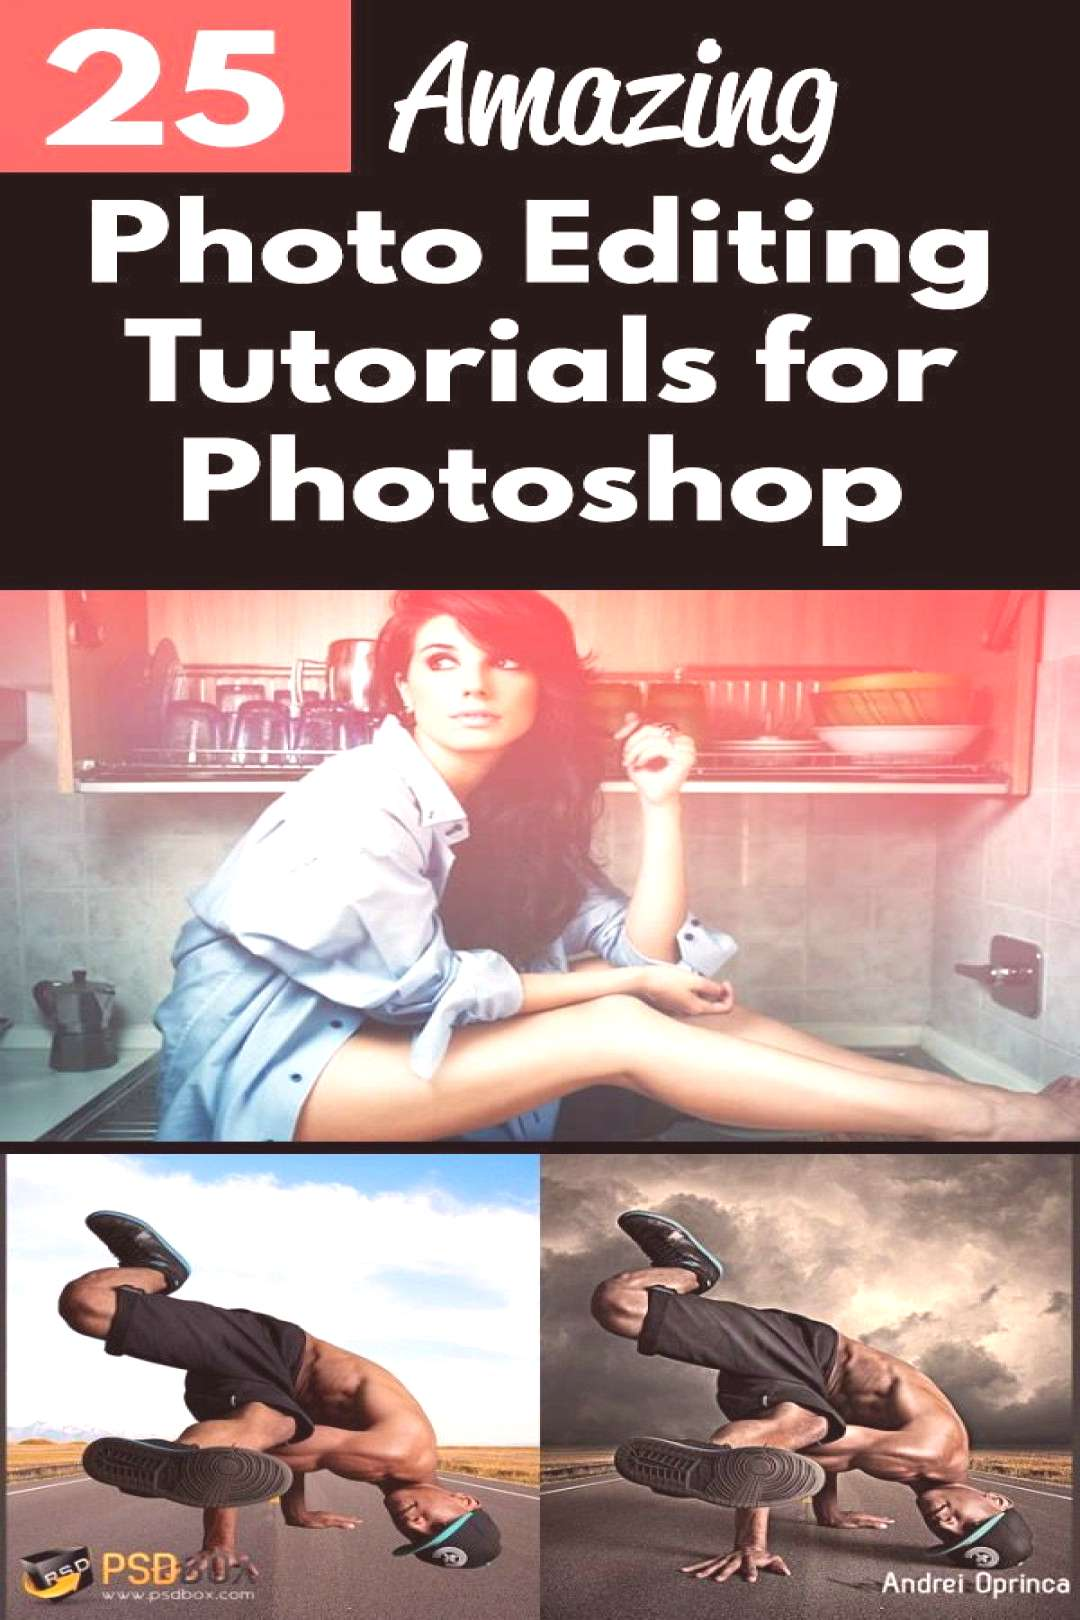 PHOTO EDITING TUTORIALS FOR PHOTOSHOP. Learn ho to edit photos and master post processing with thes